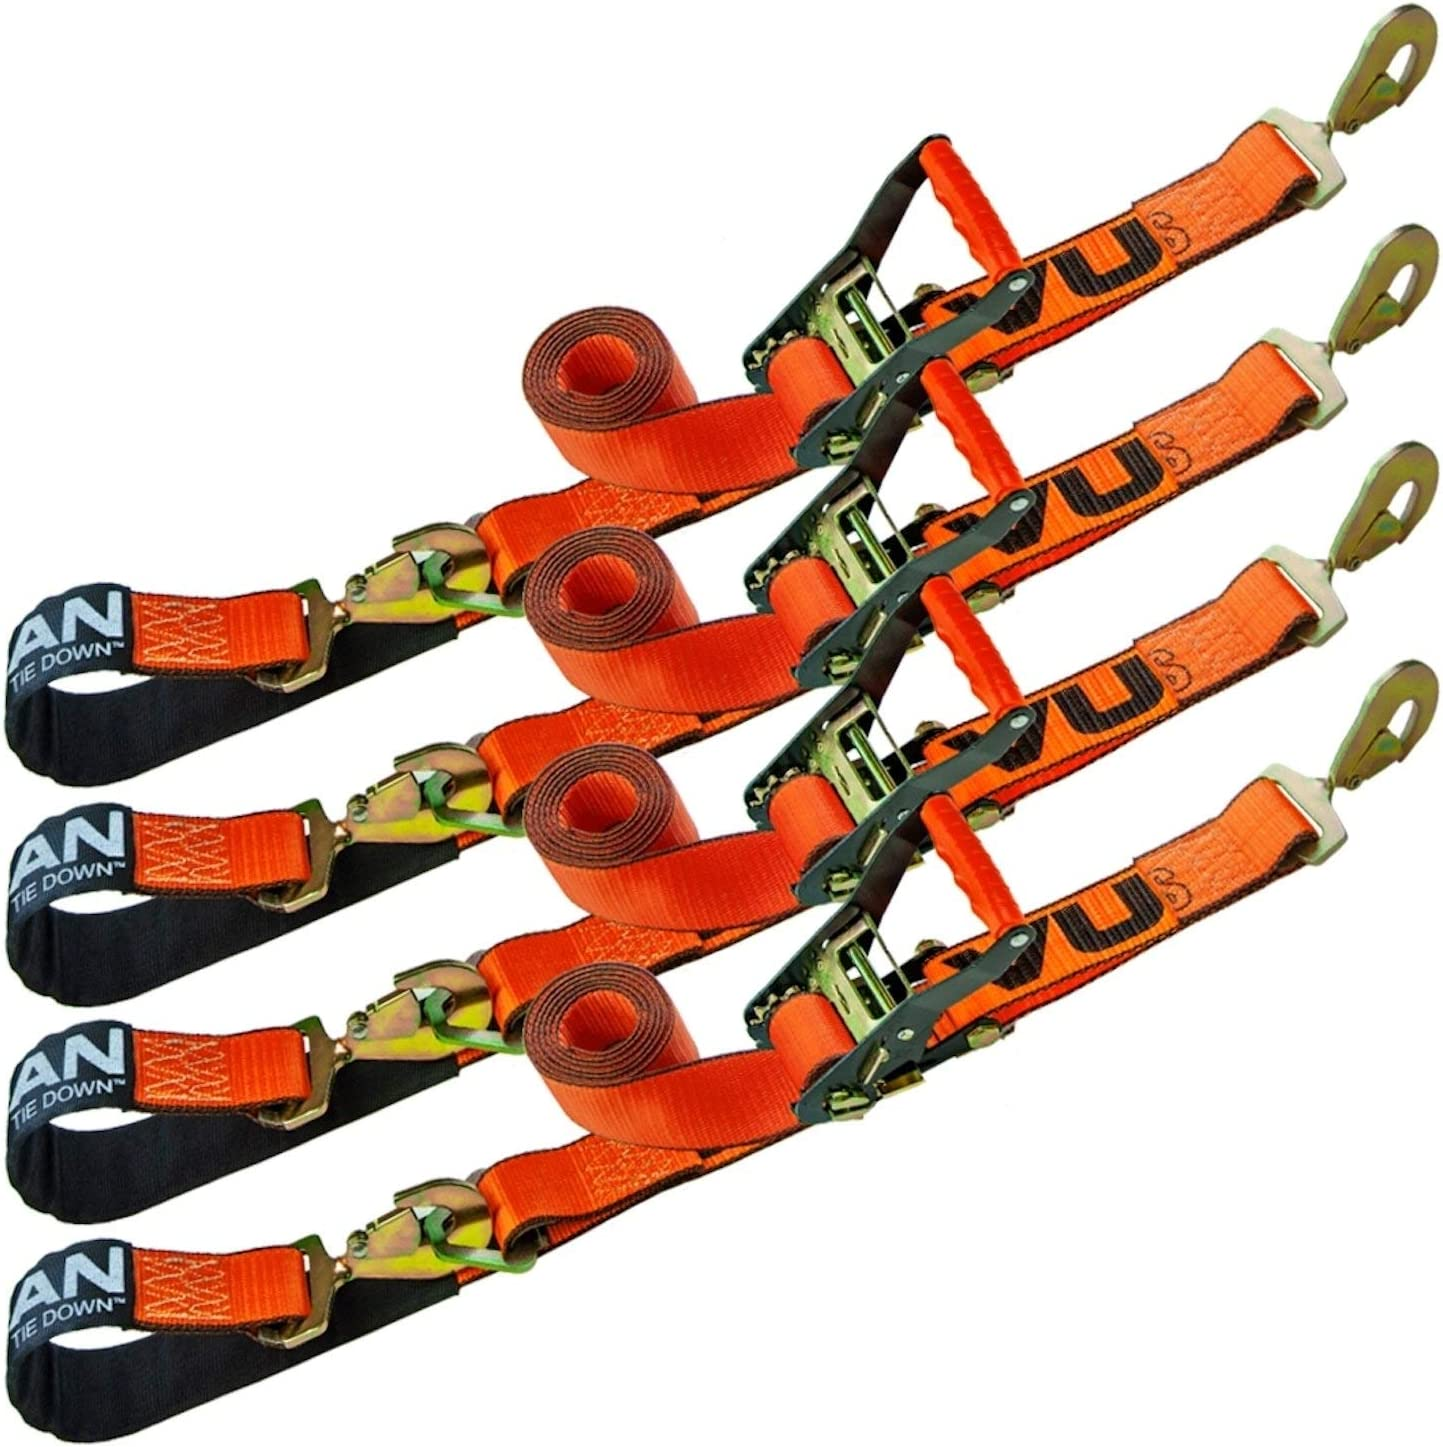 VULCAN Axle Tie Down Combo Strap with Snap Hook Ratchet - 2 Inch x 114 Inch, 4 Pack - PROSeries - 3,300 Pound Safe Working Load